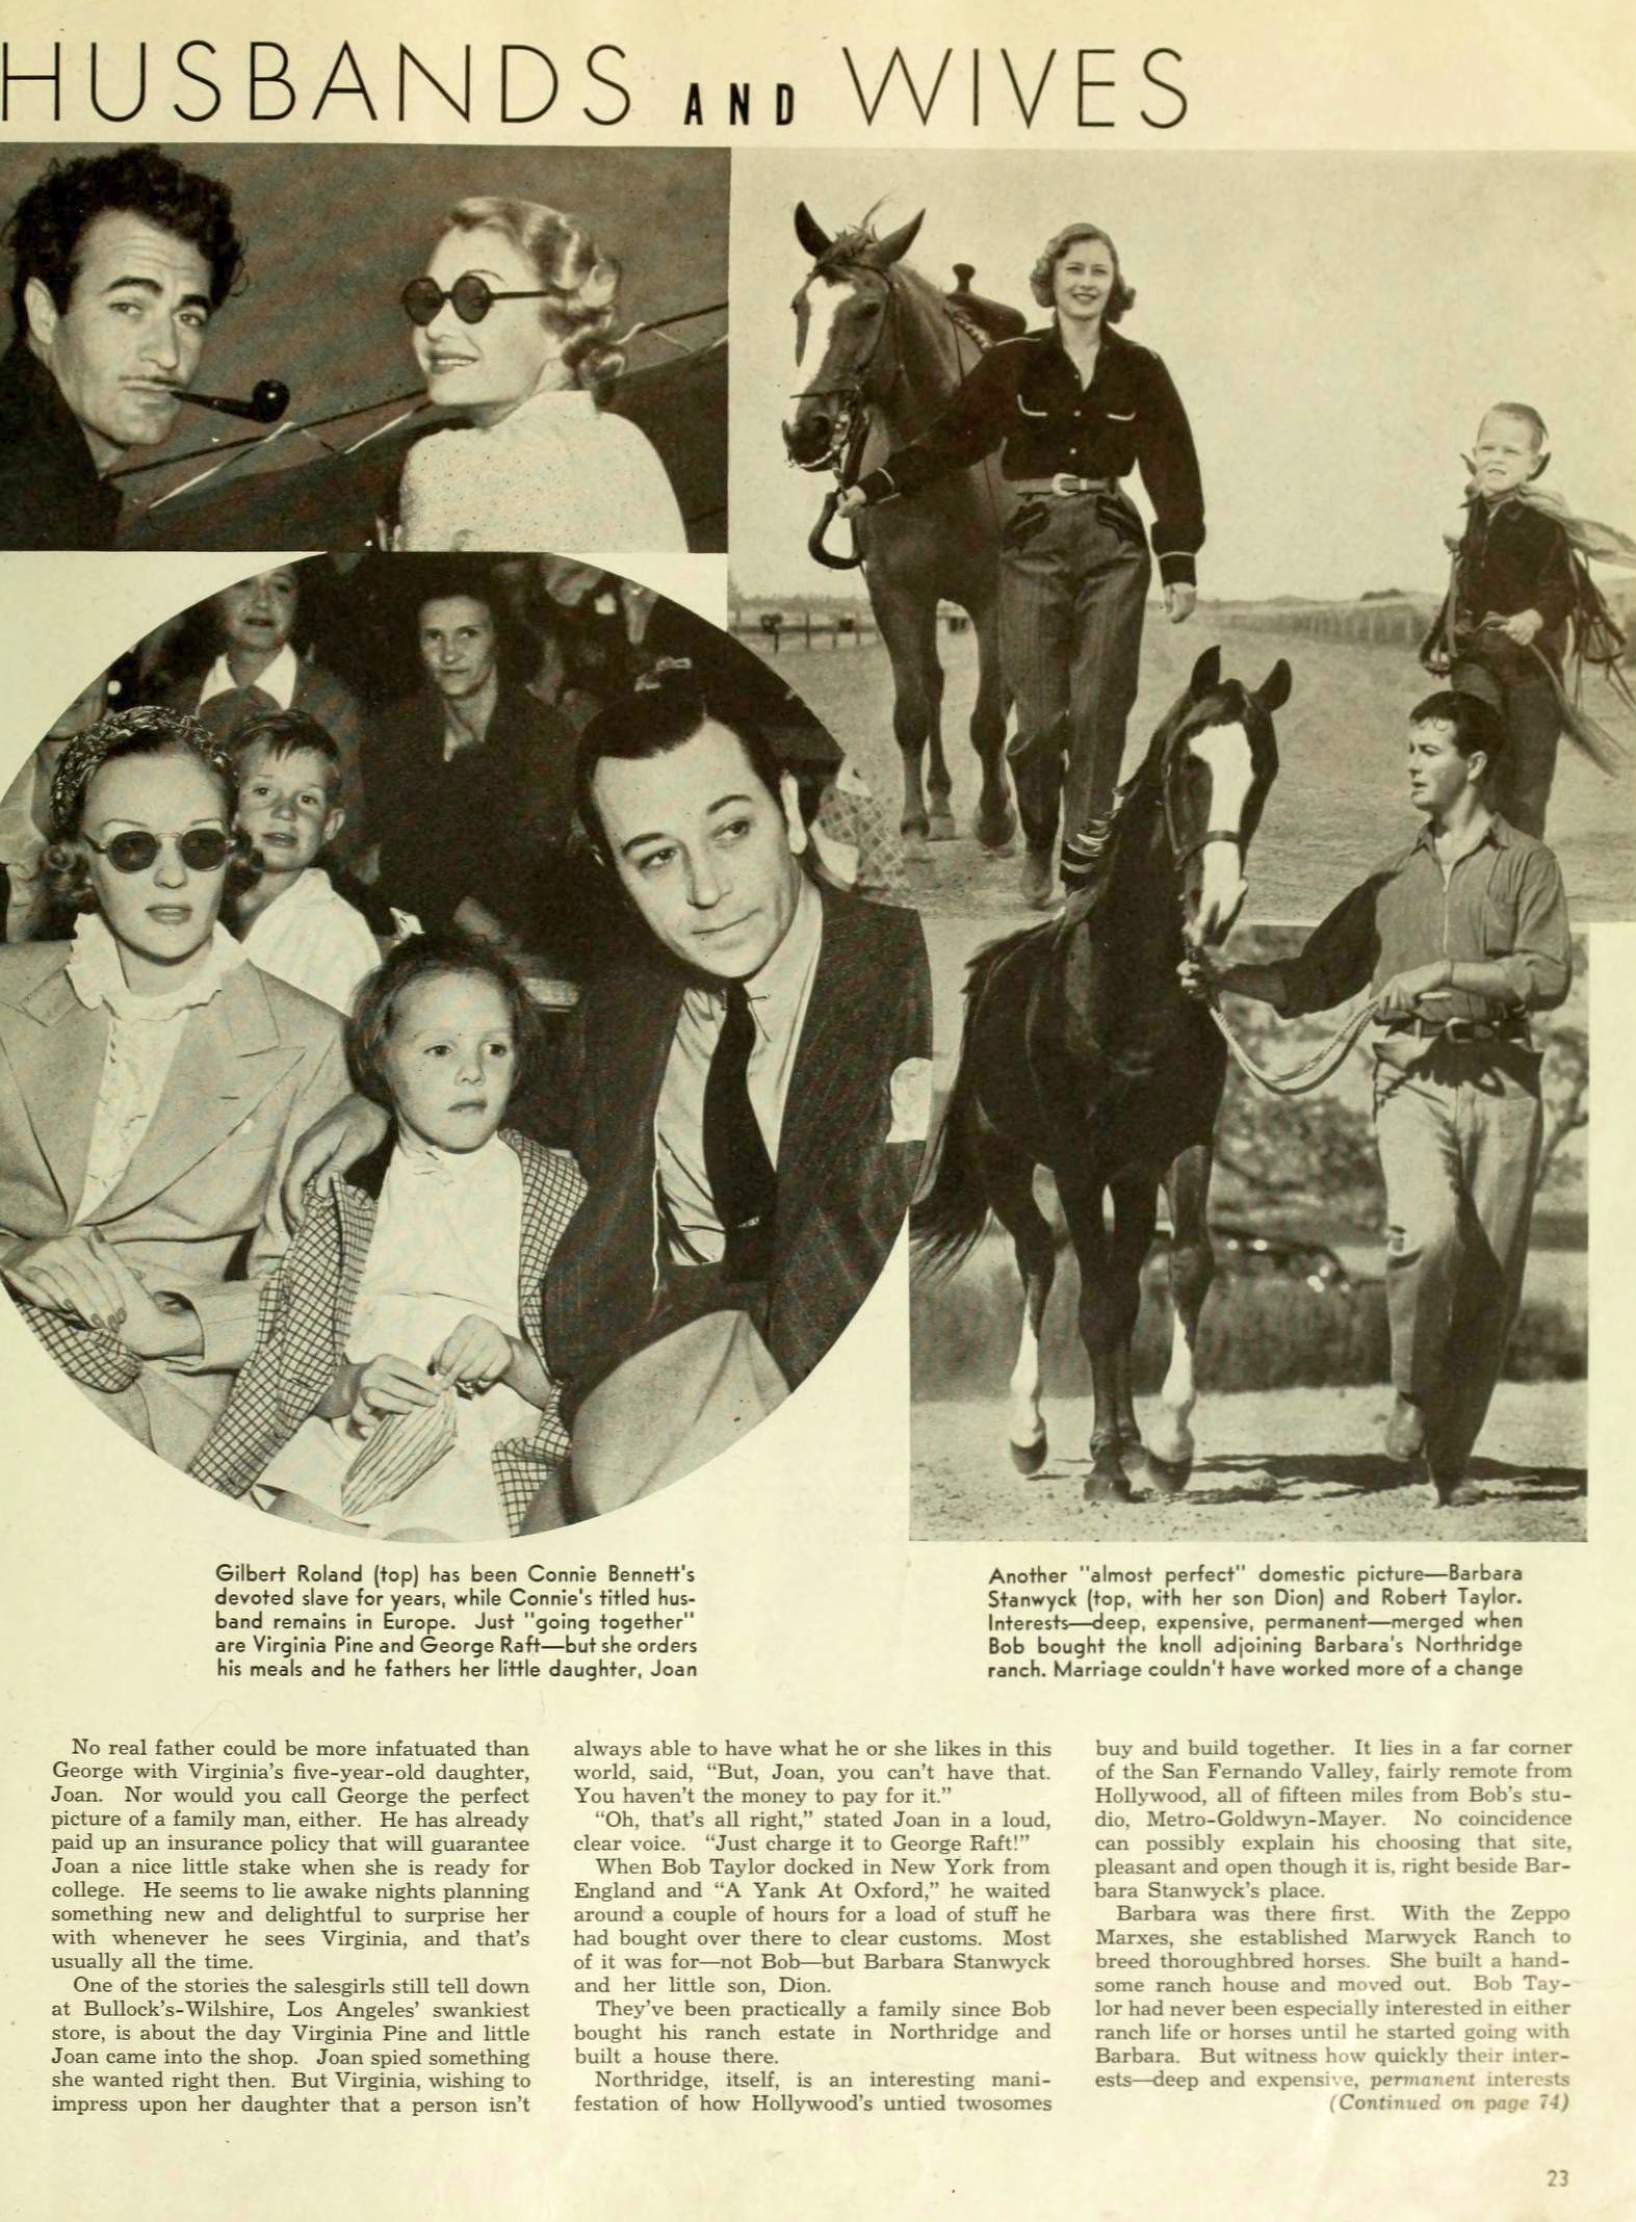 carole lombard photoplay jan 1939 hollywood's unmarried husbands and wives 01a